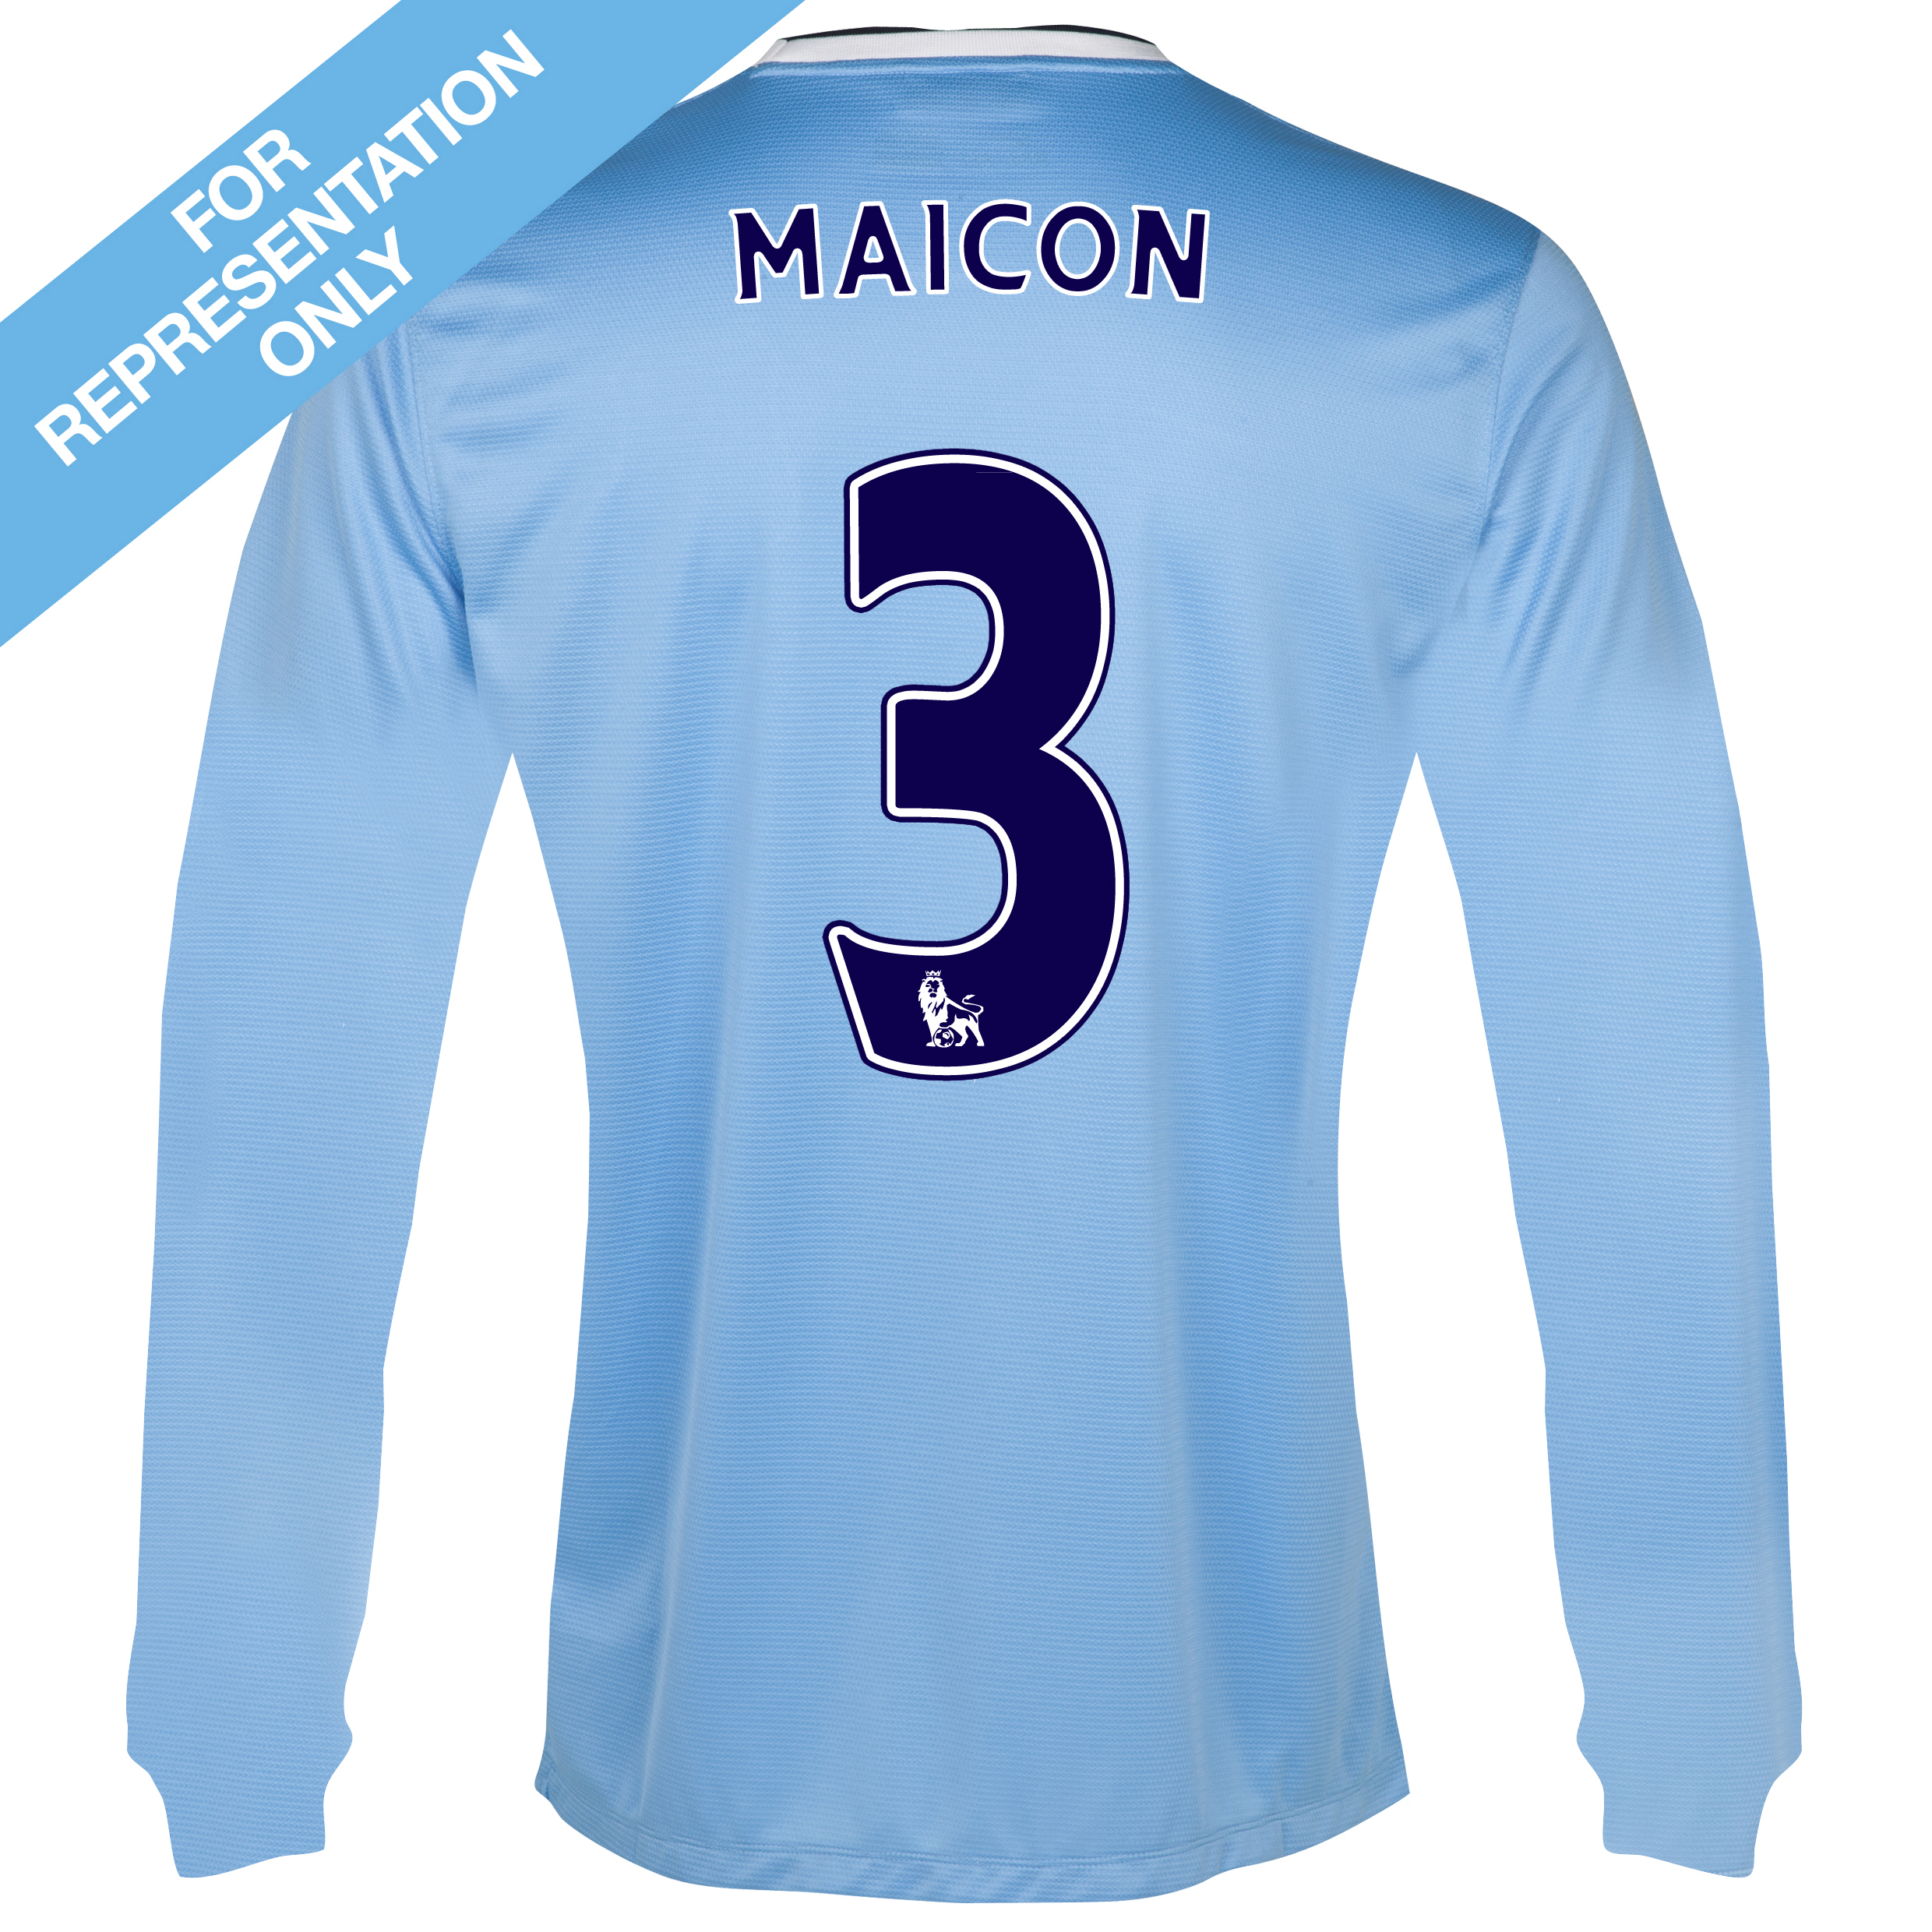 Manchester City Home Shirt 2013/14 - Long Sleeved with Maicon 3 printing